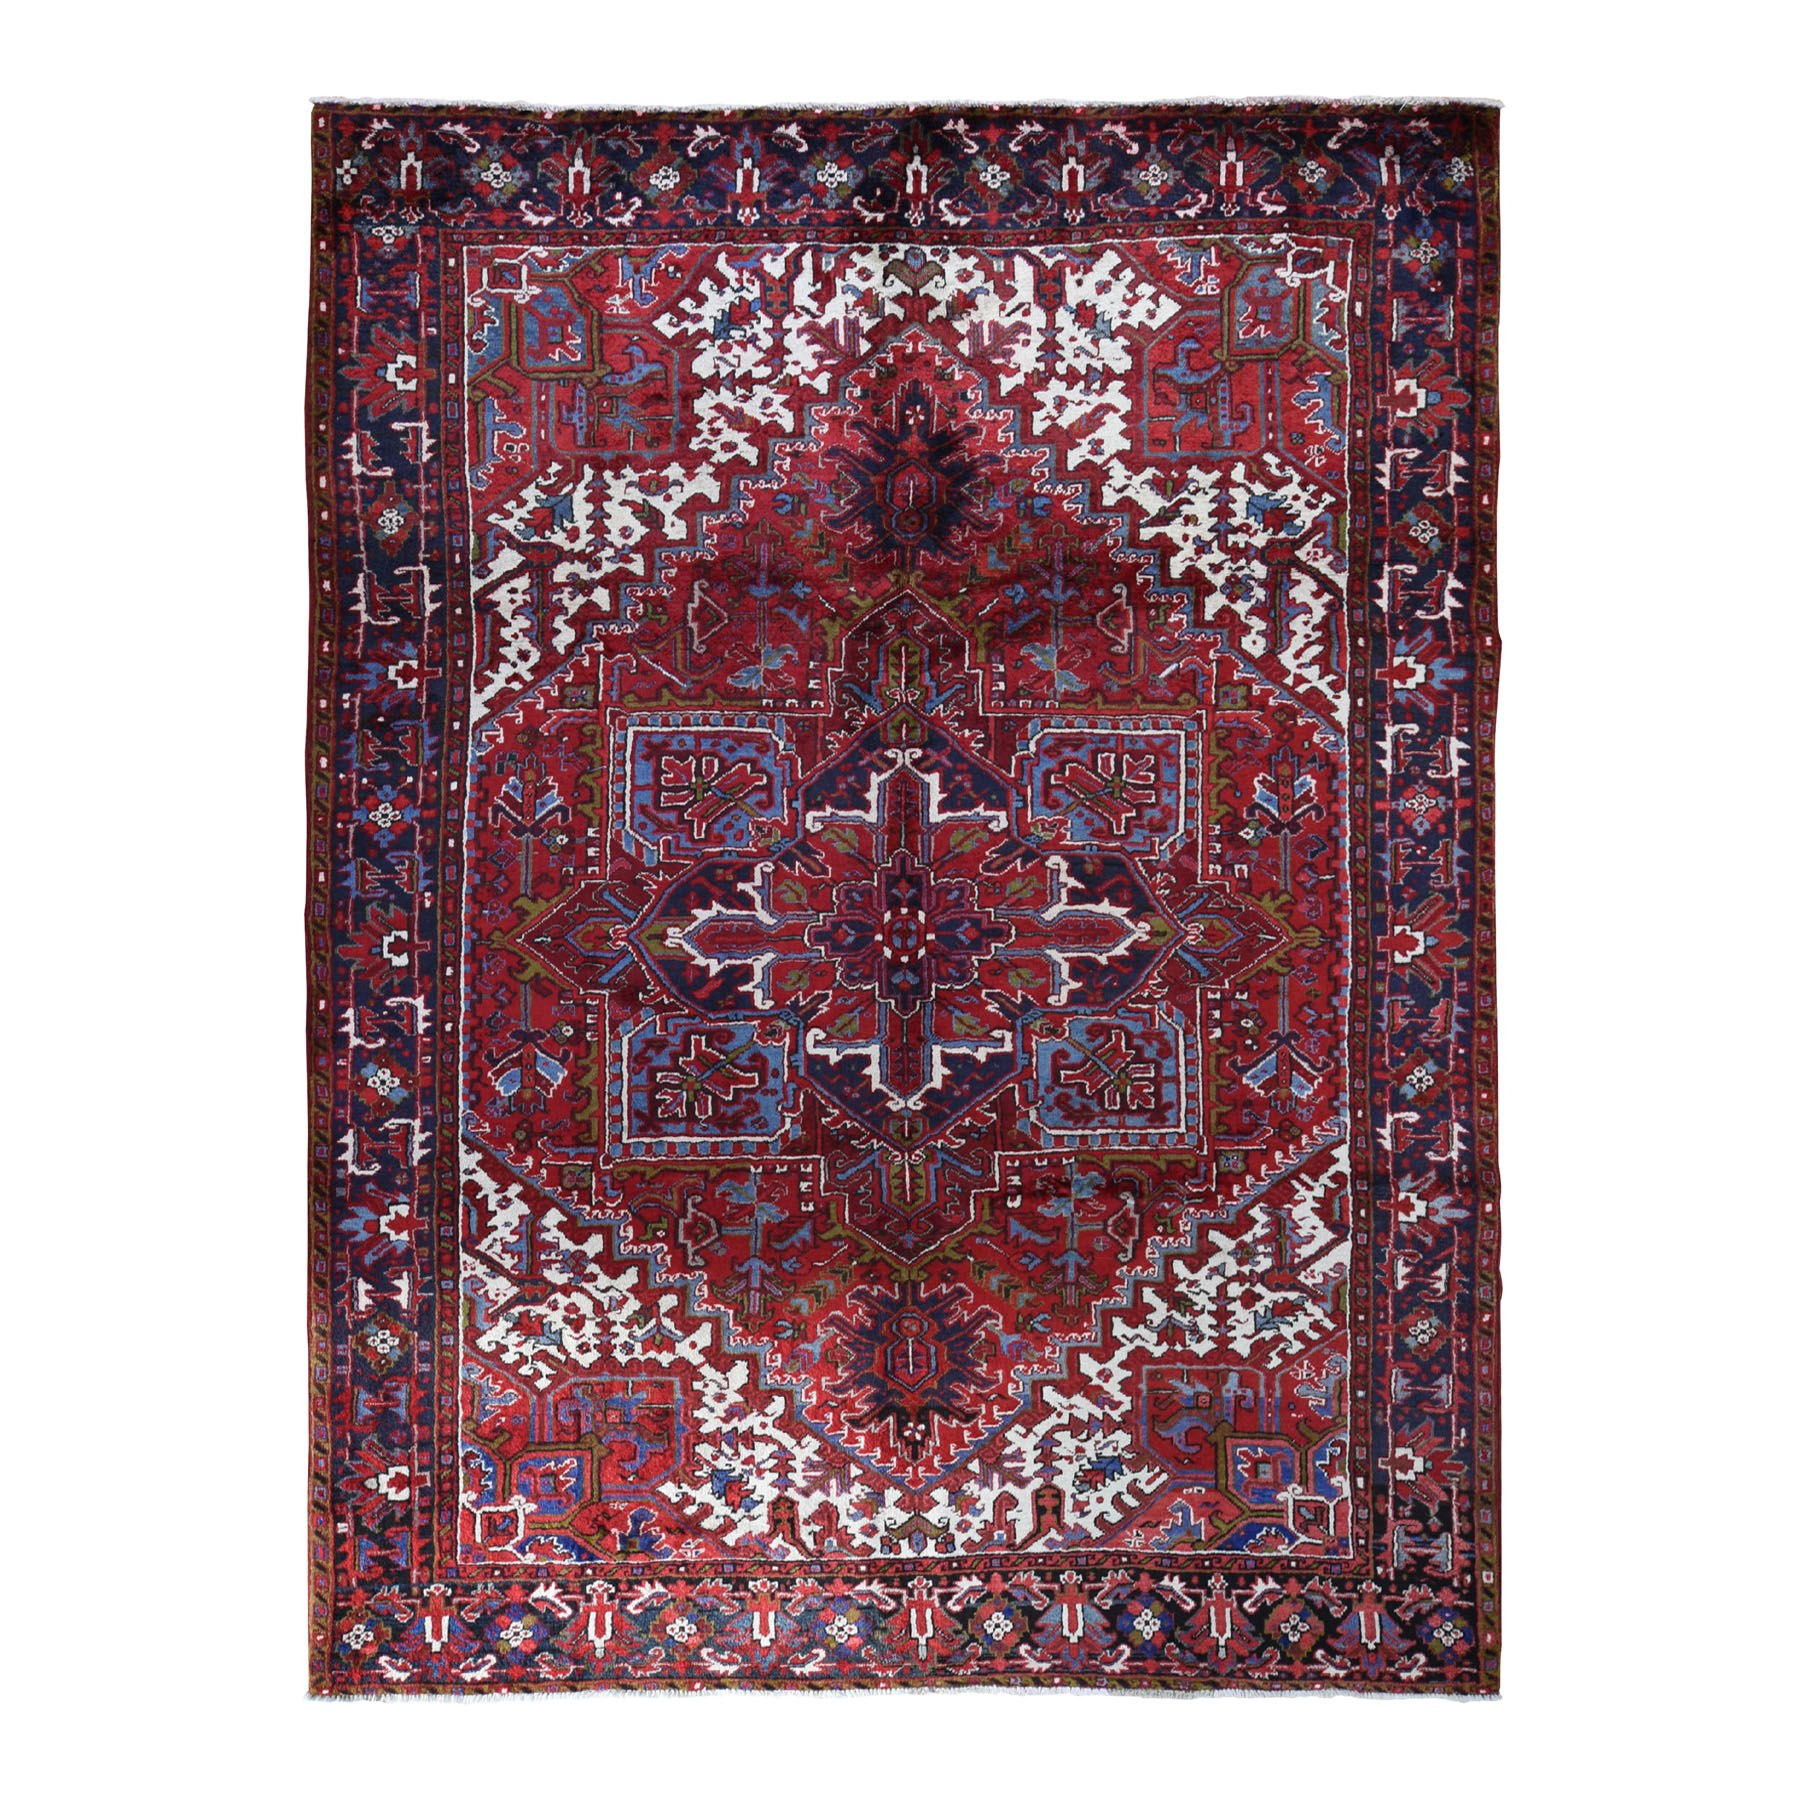 "7'6""X10'6"" Red Semi Antique Persian Heriz Geometric Design Thick And Plush Hand Knotted Oriental Rug moad8ccb"